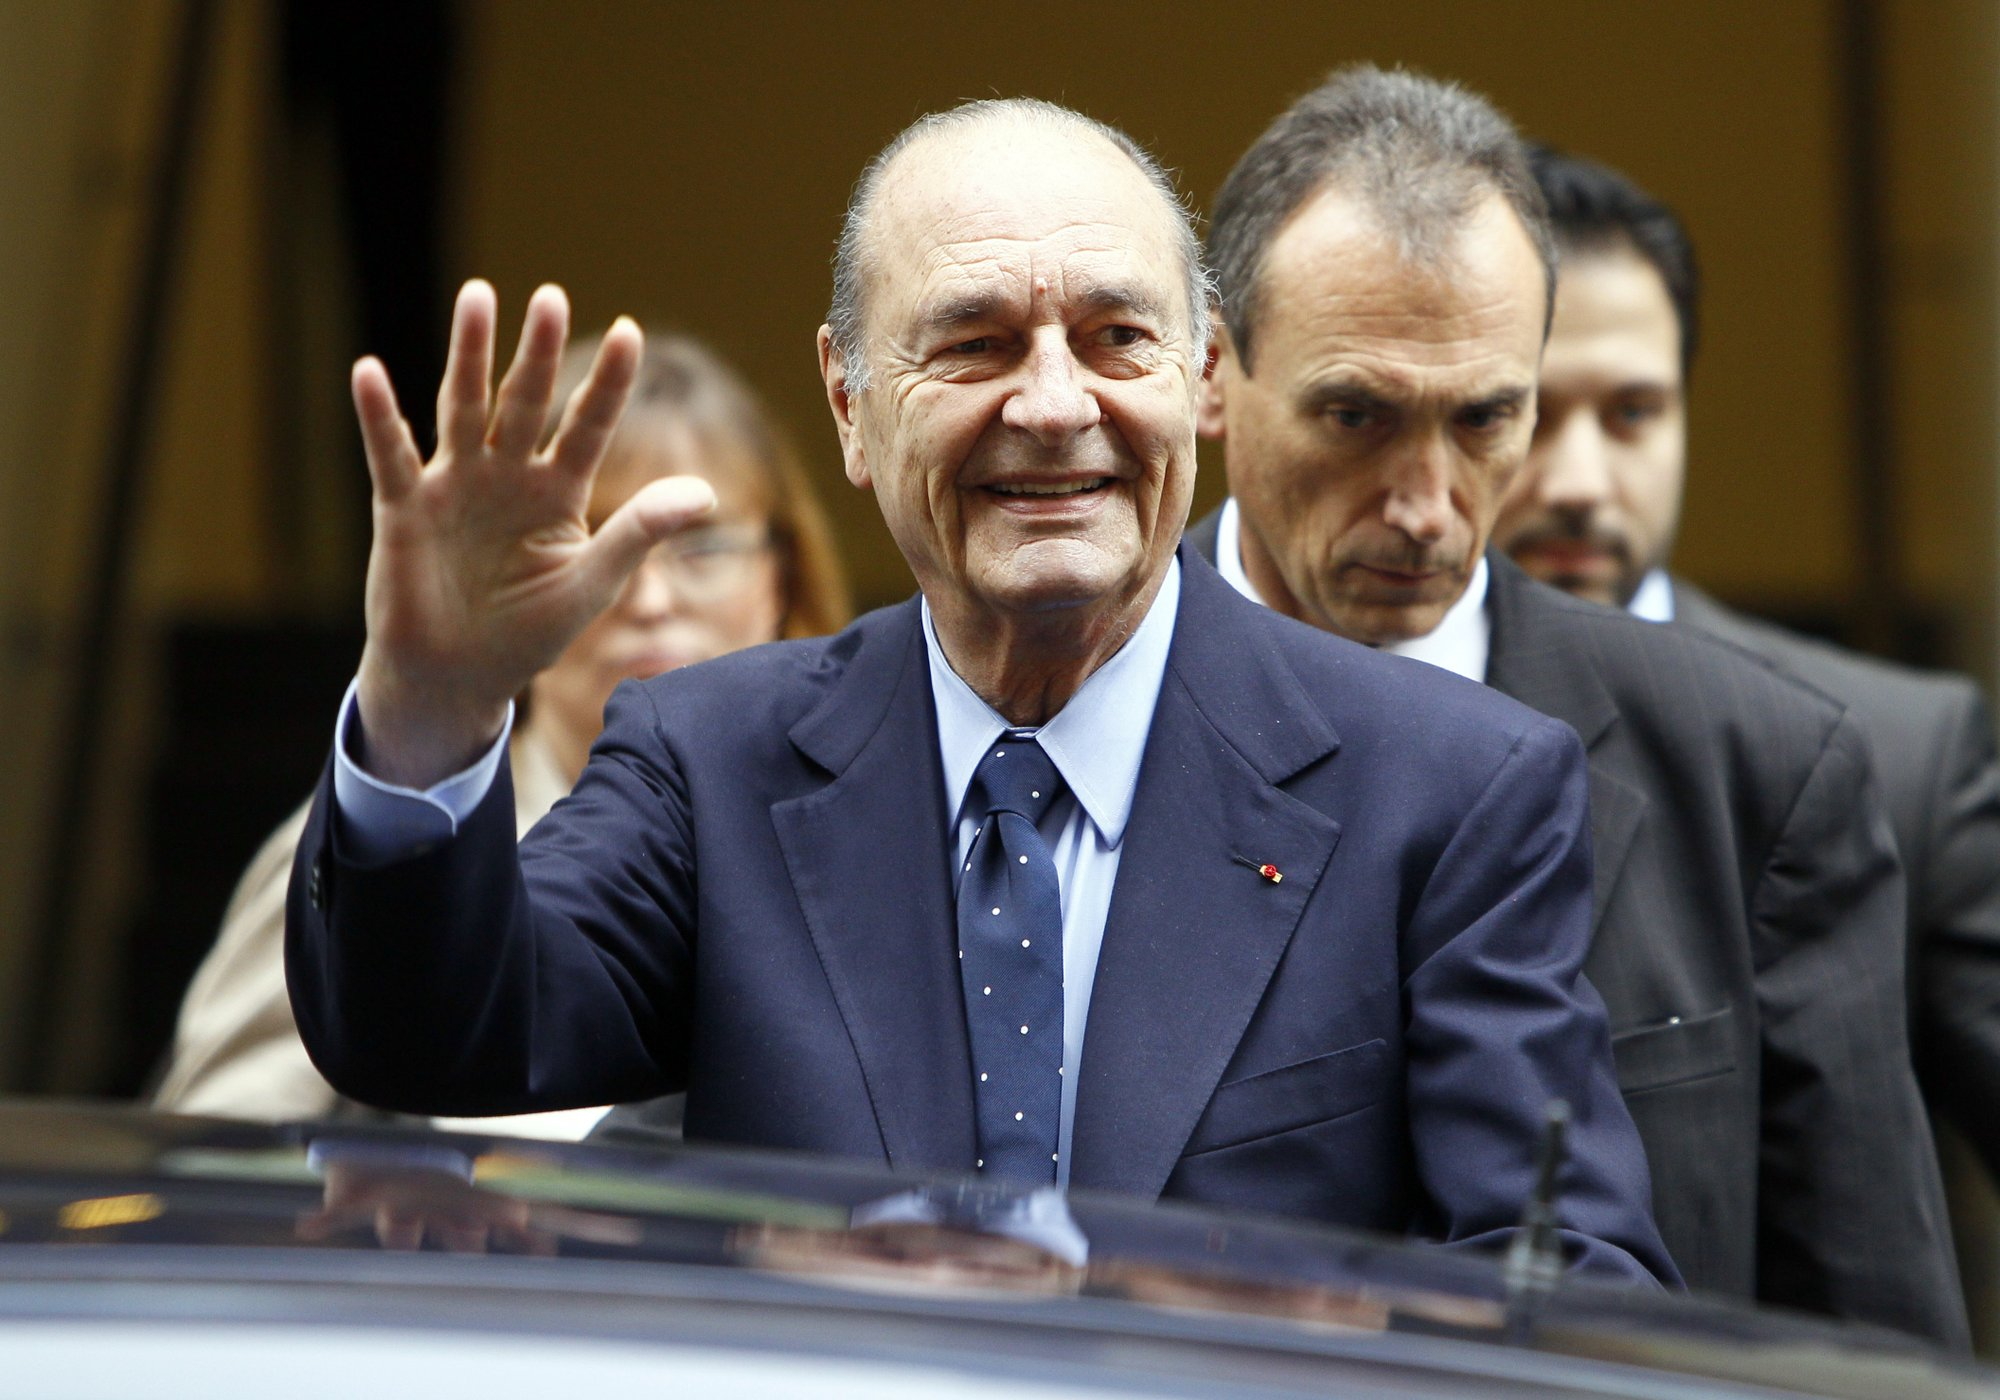 France's Jacques Chirac in hospital with lung infection